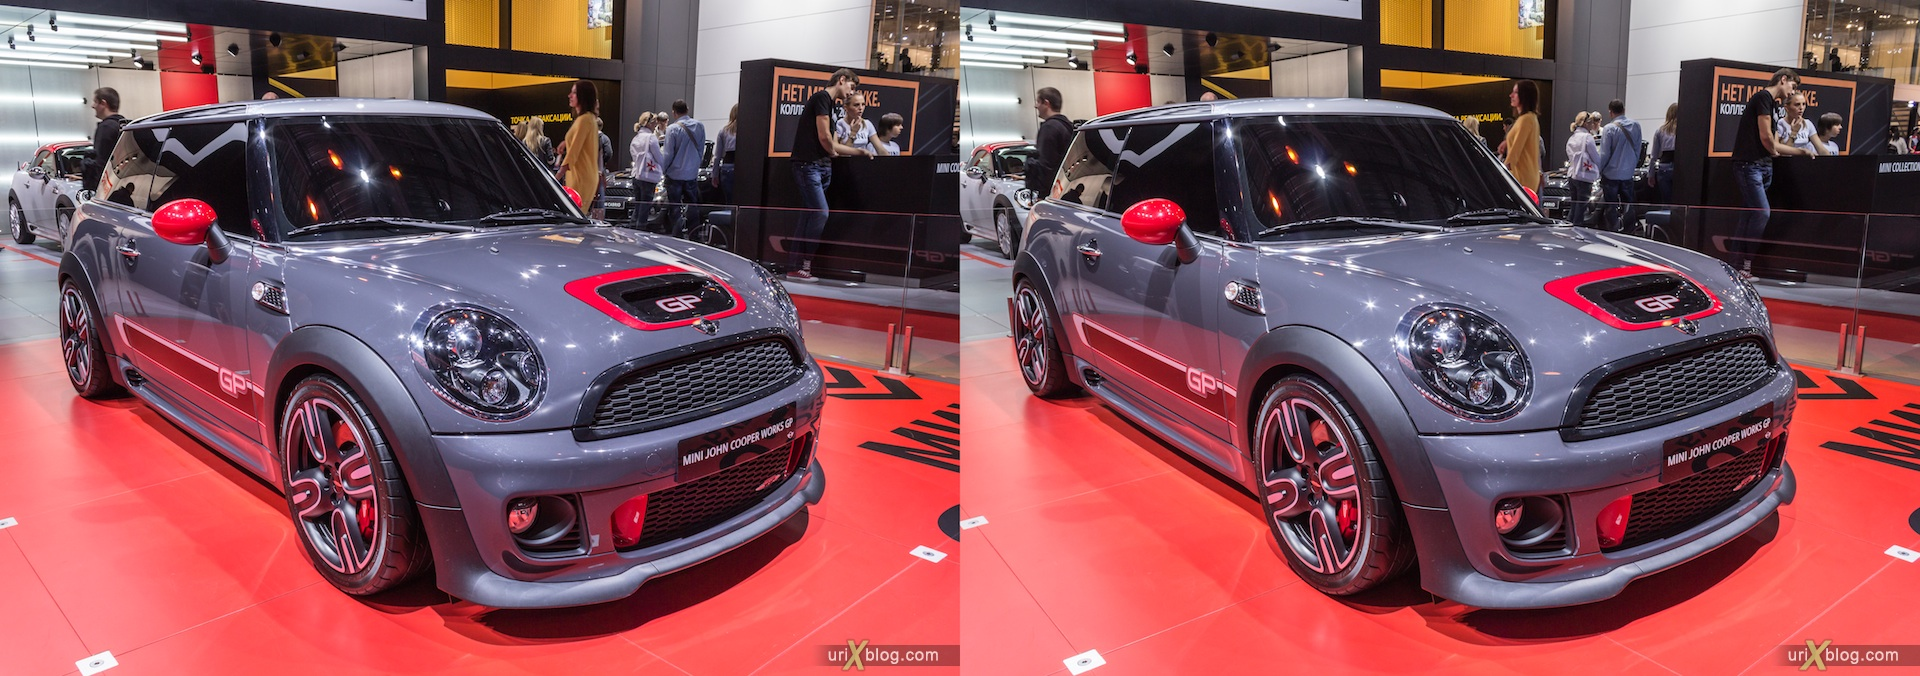 2012, Mini John Cooper Works GP, Moscow International Automobile Salon, auto show, 3D, stereo pair, cross-eyed, crossview